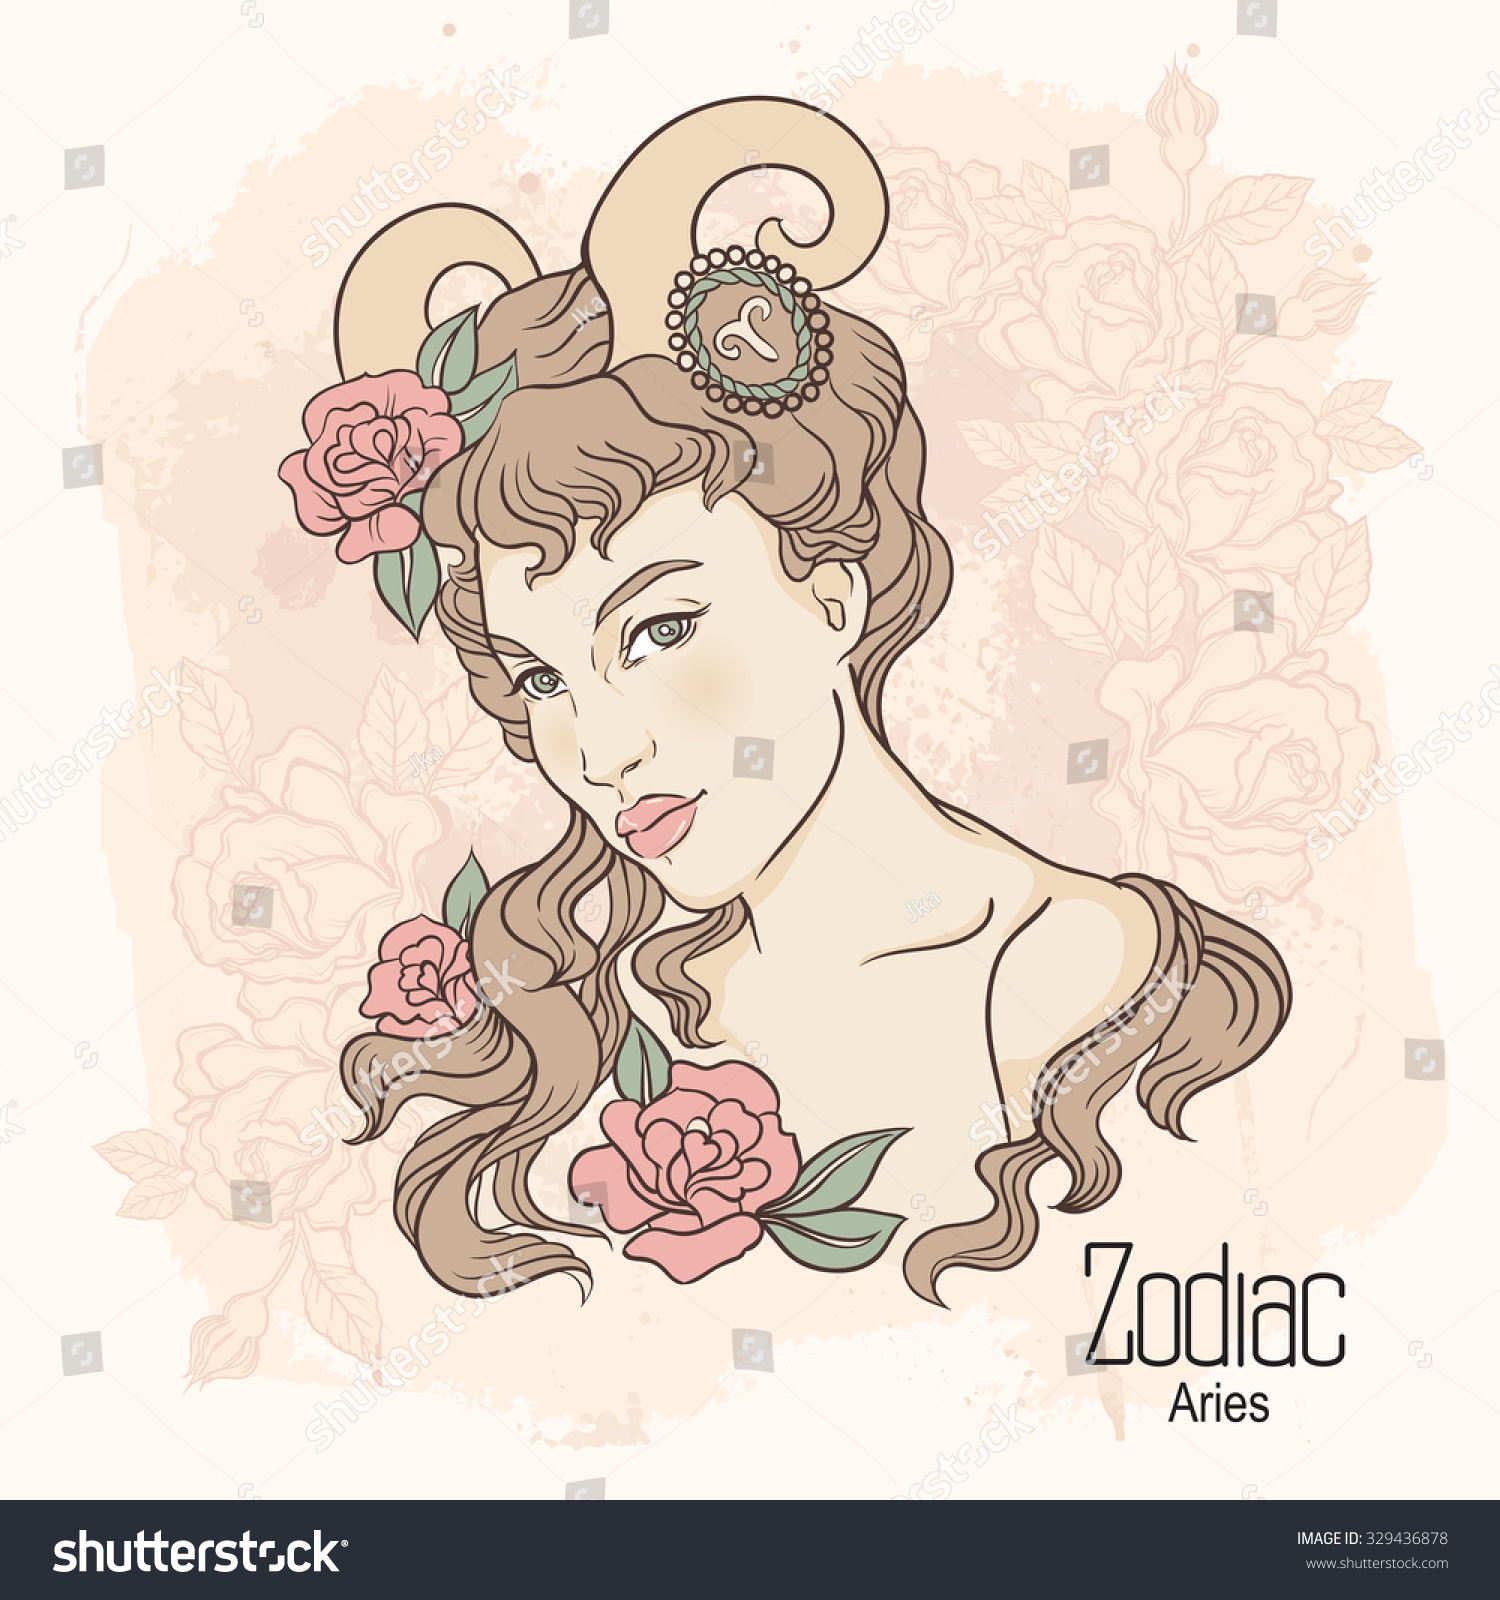 Zodiac illustration aries girl flowers design stock for Flowers for aries woman